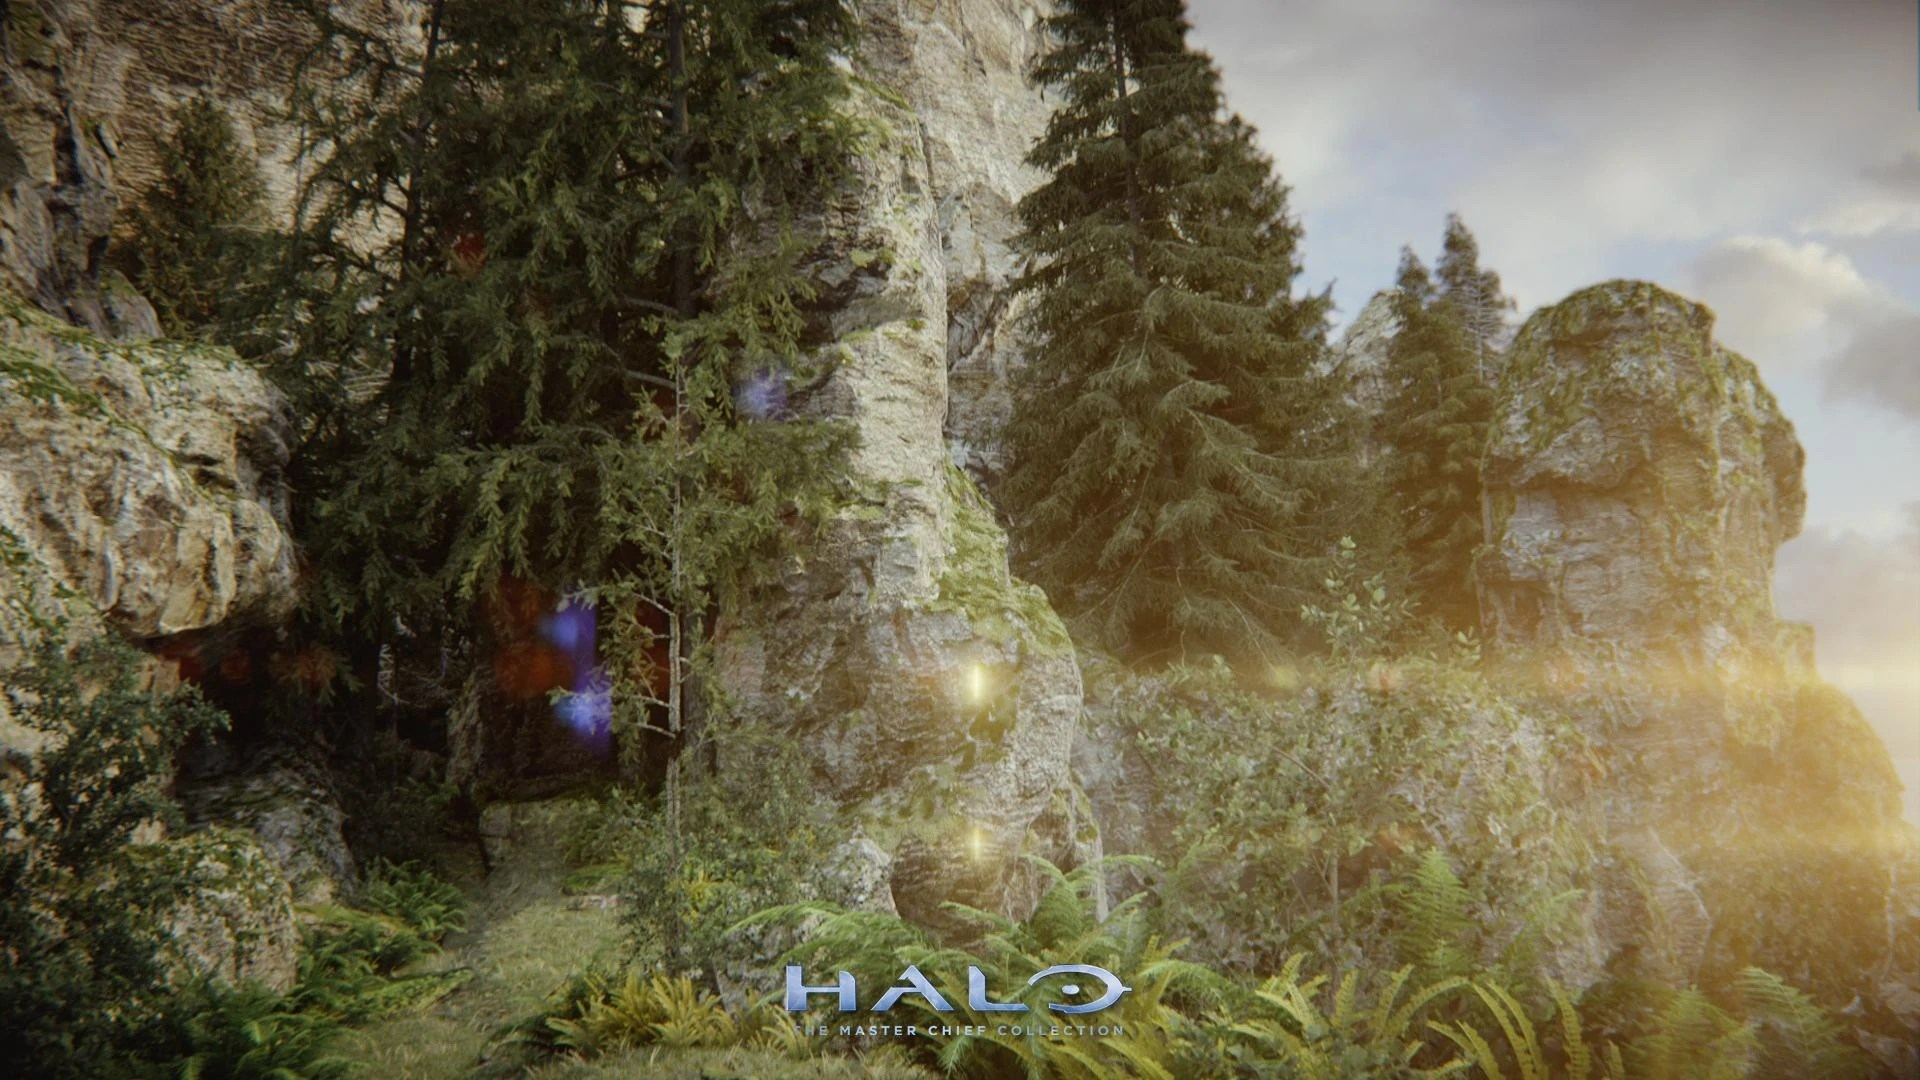 Halo Wallpaper Fall Of Reach Uprising Halo Nation Fandom Powered By Wikia